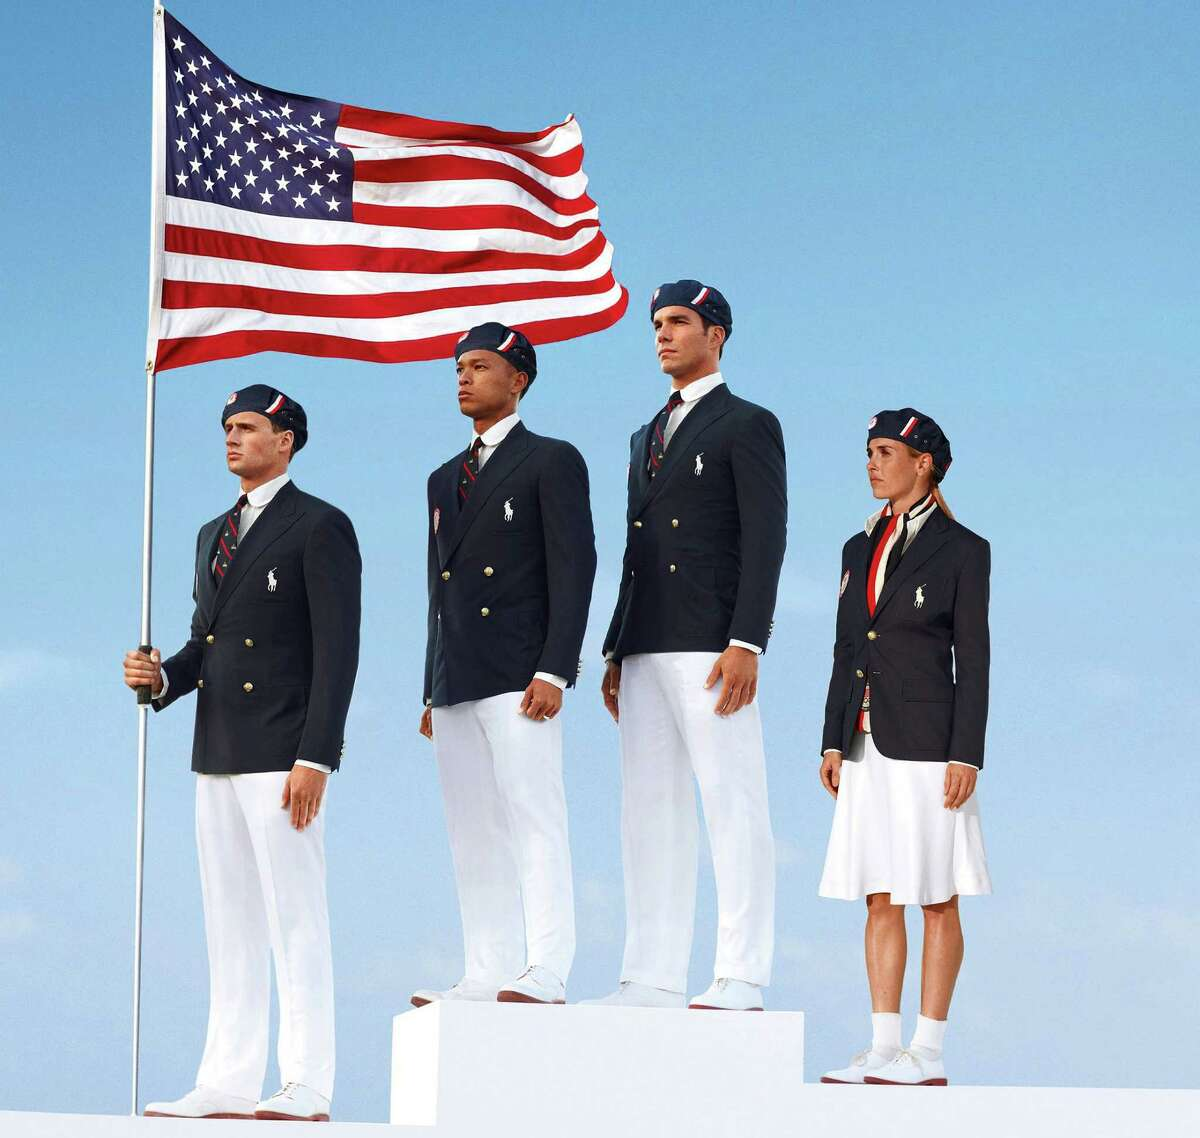 This product image released by Ralph Lauren shows U.S. Olympic athletes, from left, swimmer Ryan Lochte, decathlete Bryan Clay, rower Giuseppe Lanzone and soccer player Heather Mitts modeling the the official Team USA opening ceremony parade uniform. (AP Photo/Ralph Lauren)